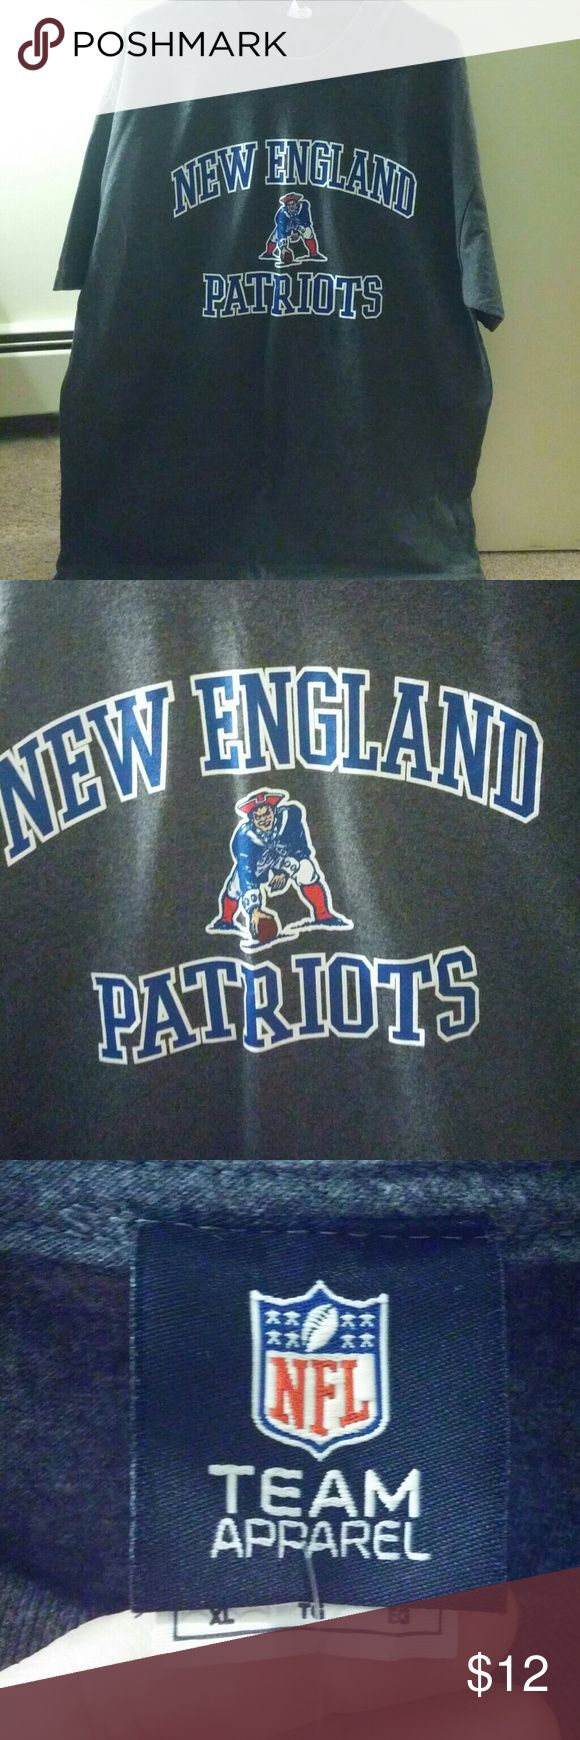 NWOT Patriots Tee Dark grey, unisex, New England Patriots t-shirt. Short sleeve. Purchased at the Patriots Pro Shop , new with tags! Makes a great gift! Super Bowl champs 2017 :) Never worn! NFL Team Apparel Tops Tees - Short Sleeve